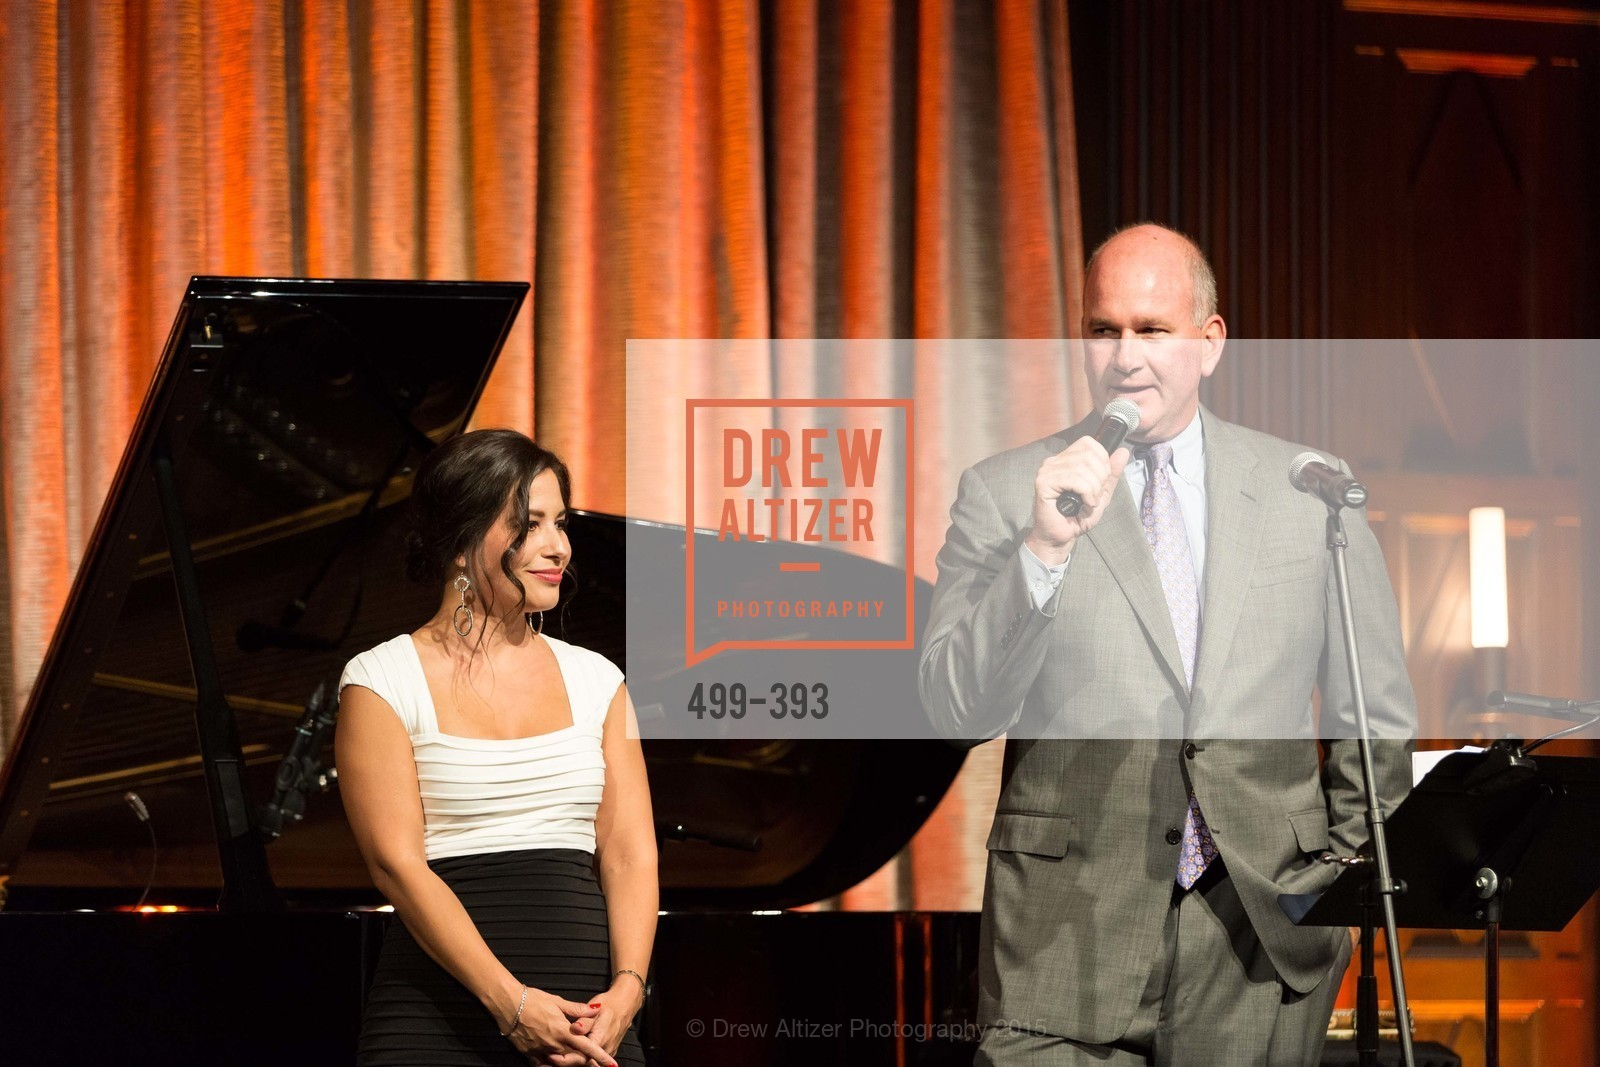 Natalie Wade, Tom Beischer, San Francisco Performances' 36th Season Gala, Merchants Exchange Building, Julia Morgan Ballroom. 465 California St, San Francisco, CA 94104, October 16th, 2015,Drew Altizer, Drew Altizer Photography, full-service agency, private events, San Francisco photographer, photographer california